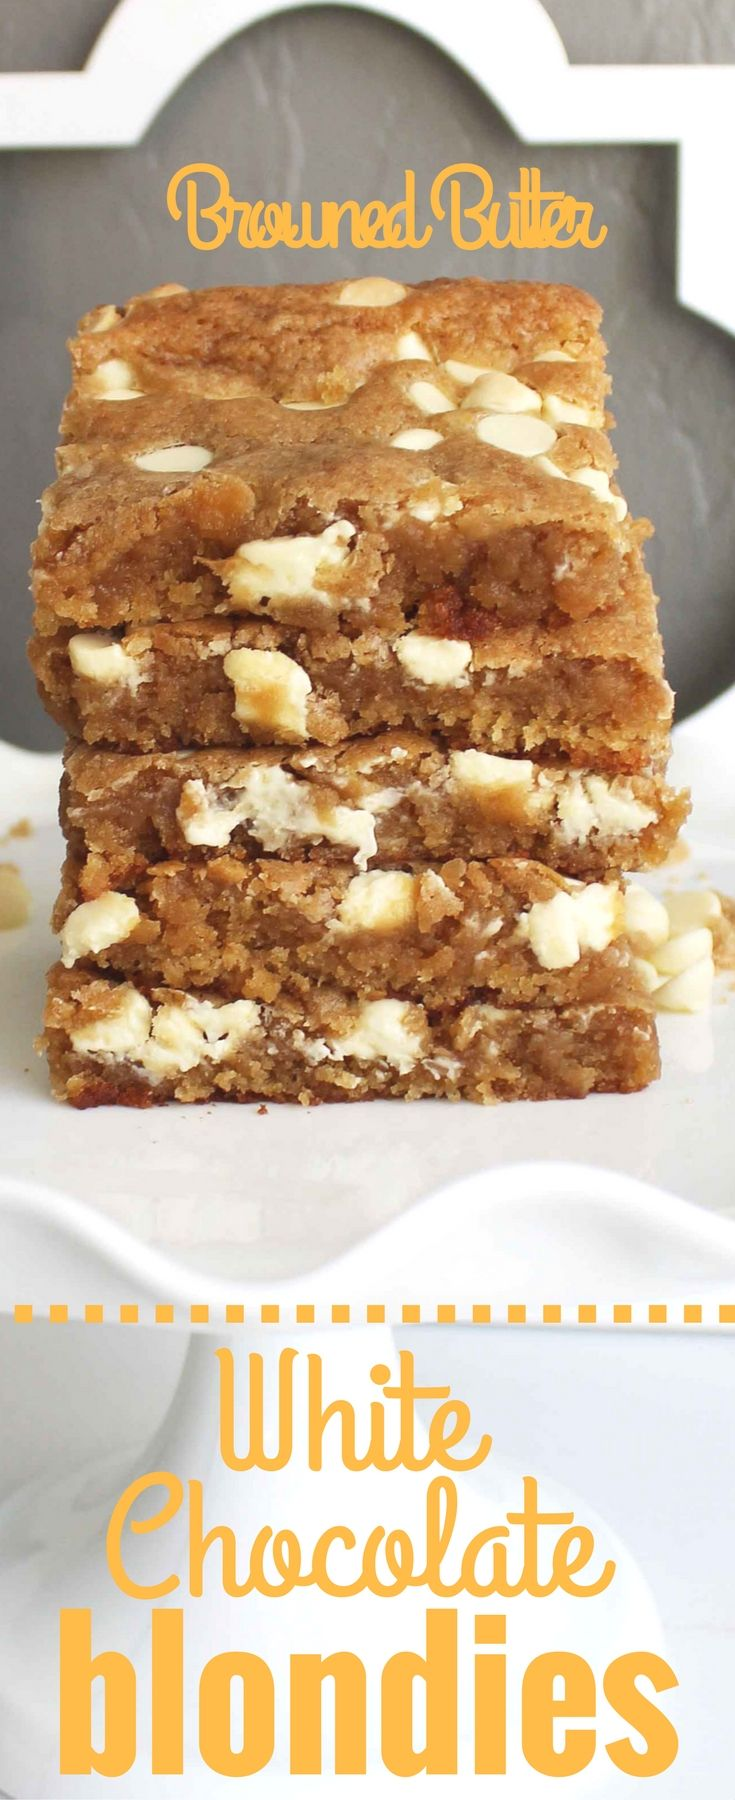 Browned Butter White Chocolate Blondie Bars. Rich toffee flavored brown butter cookie dough studded with white chocolate chunks. These White Chocolate Blondies are always a huge hit with everyone! www.modernhoney.com